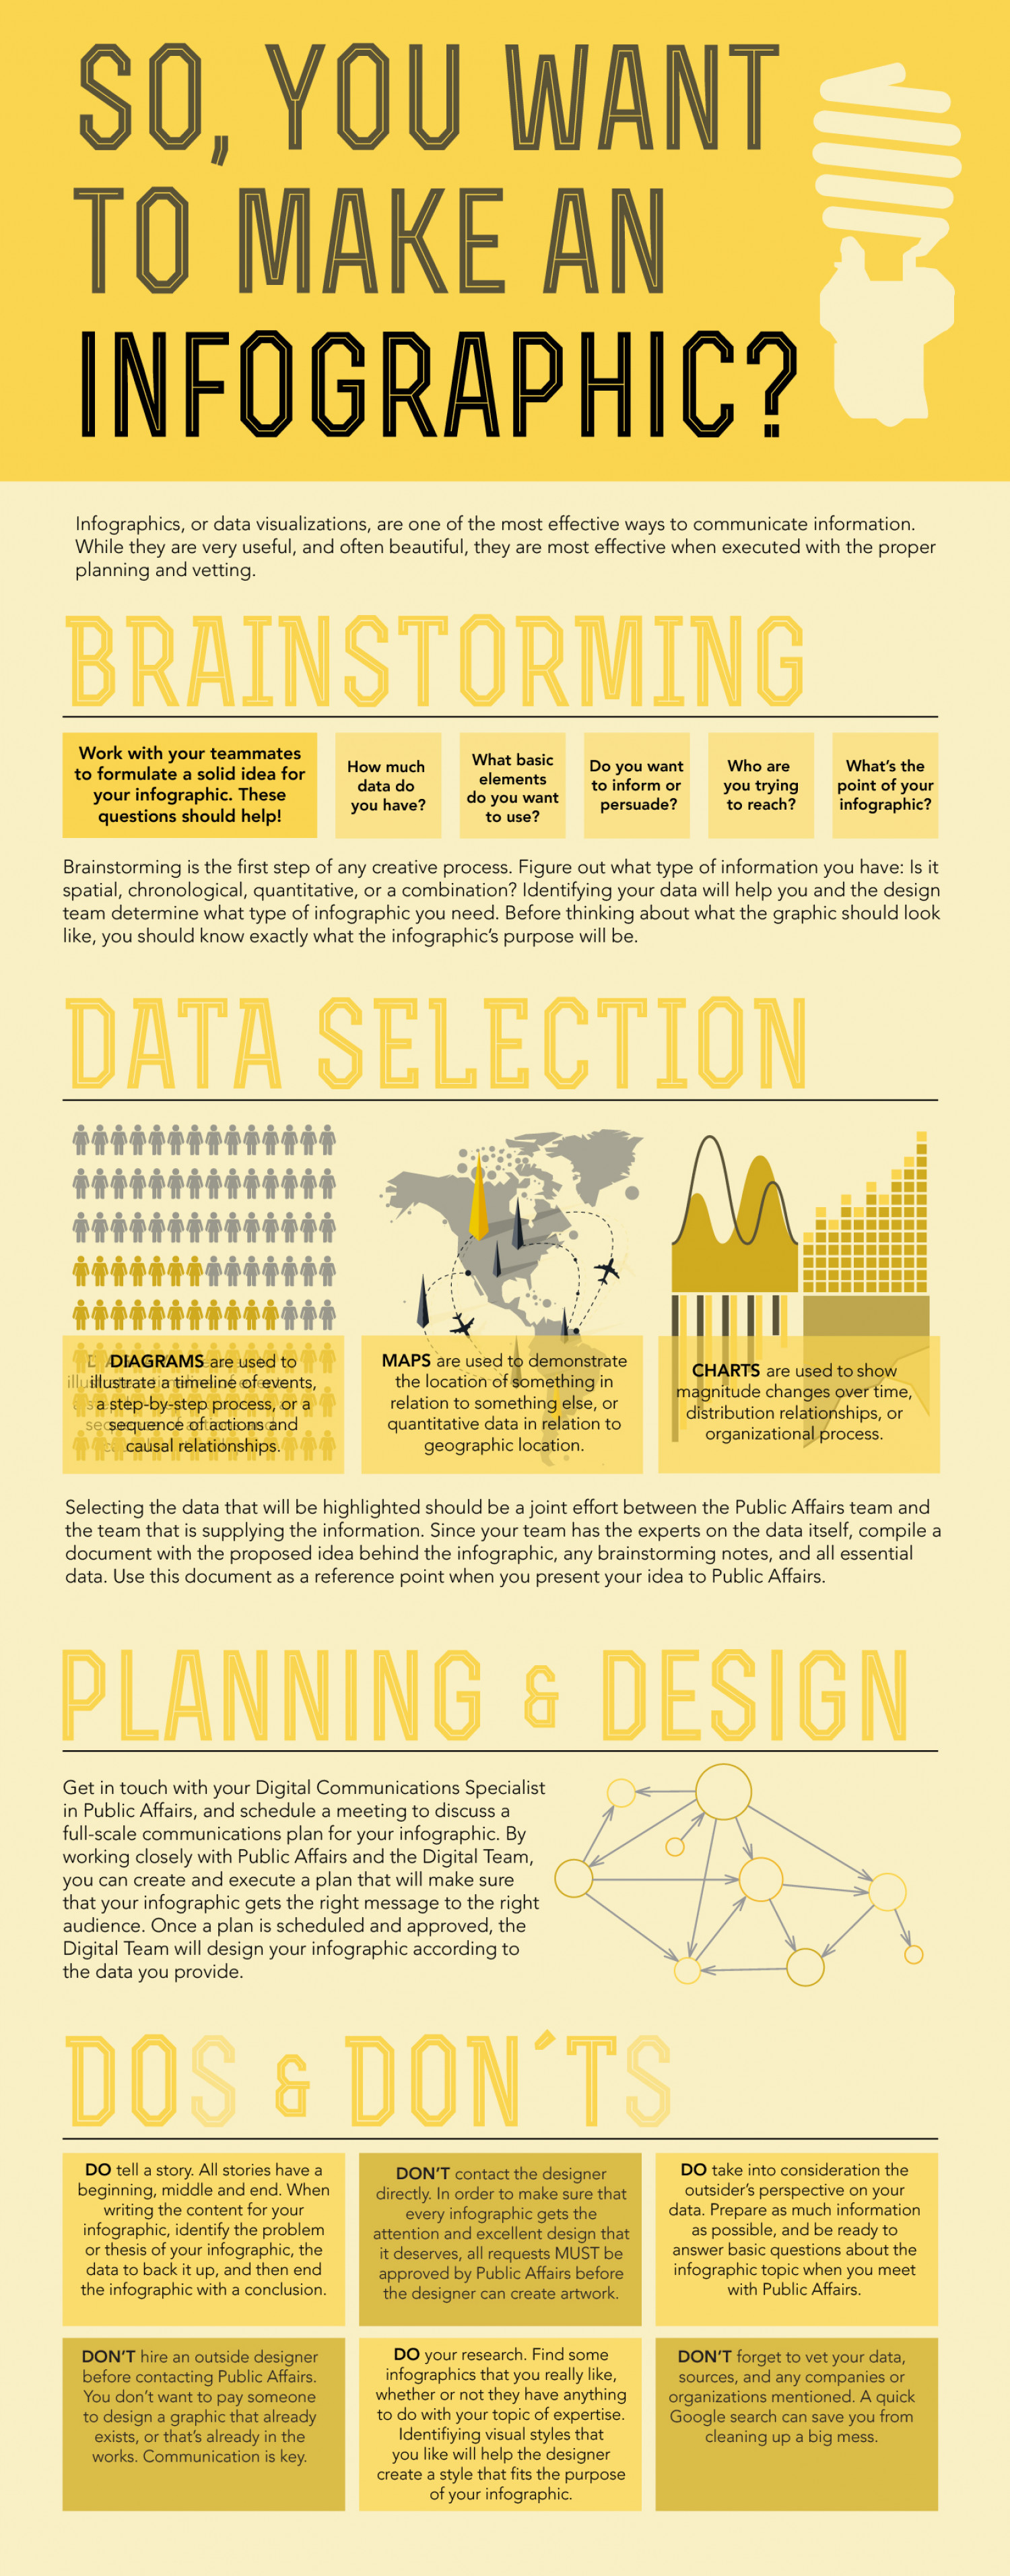 So, You Want to Make an Infographic? Infographic